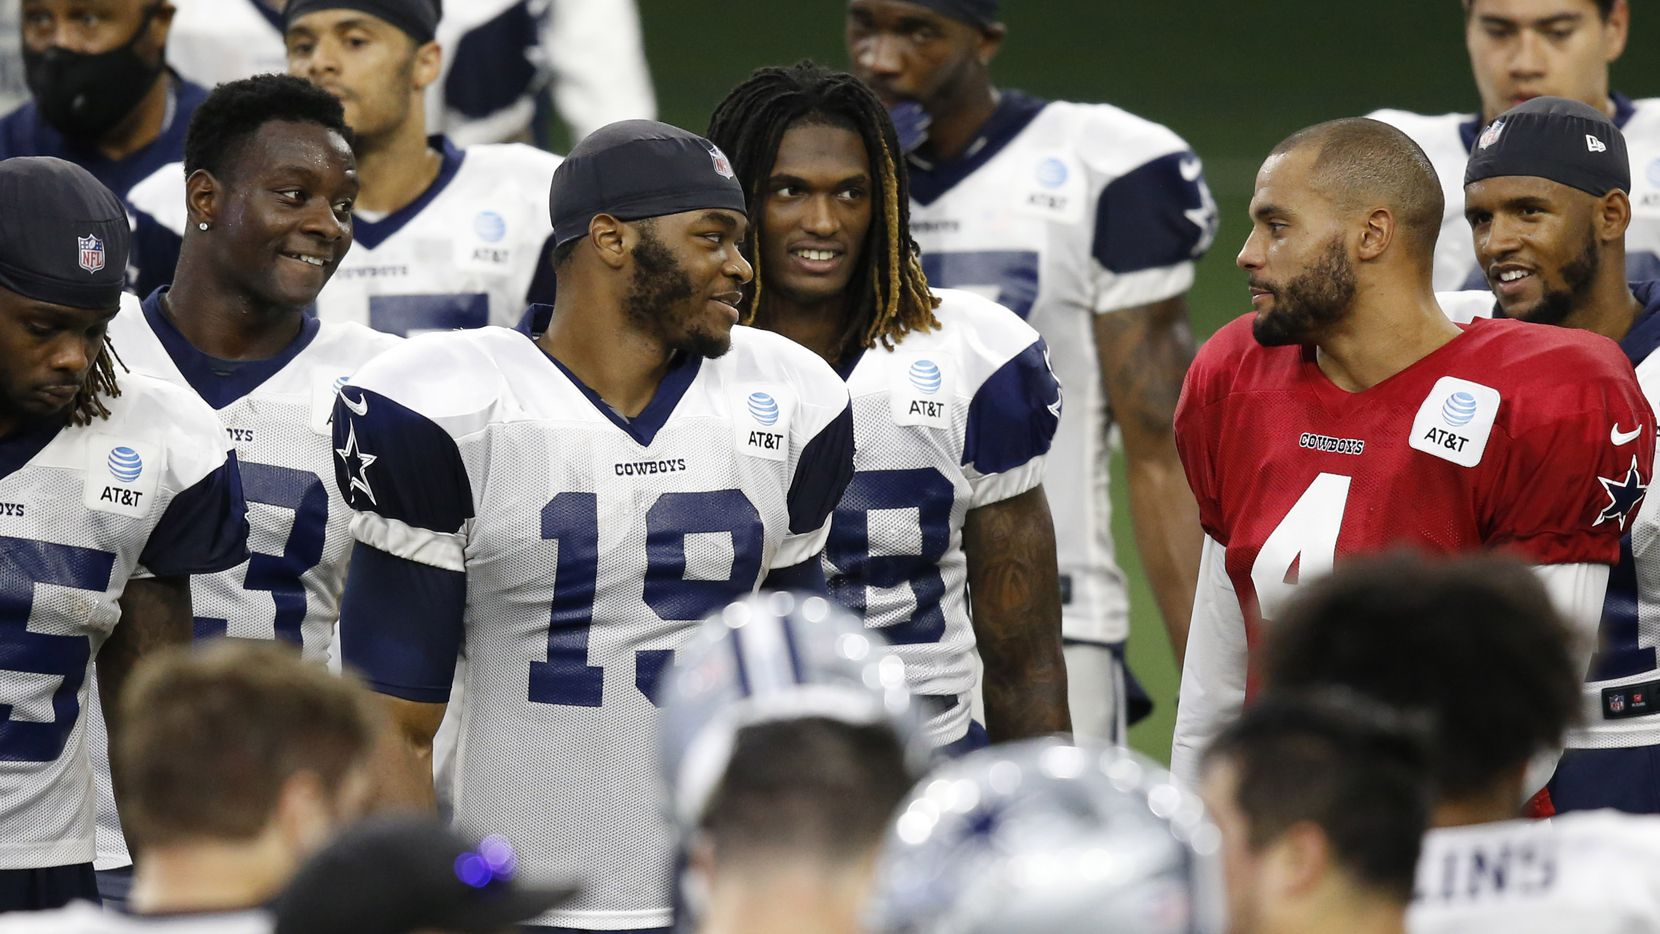 Dallas Cowboys quarterback Dak Prescott (4) talks with Dallas Cowboys wide receiver Michael Gallup (13), Dallas Cowboys wide receiver Amari Cooper (19), and Dallas Cowboys wide receiver CeeDee Lamb (88) after practice during training camp at the Dallas Cowboys headquarters at The Star in Frisco, Texas on Thursday, August 27, 2020.